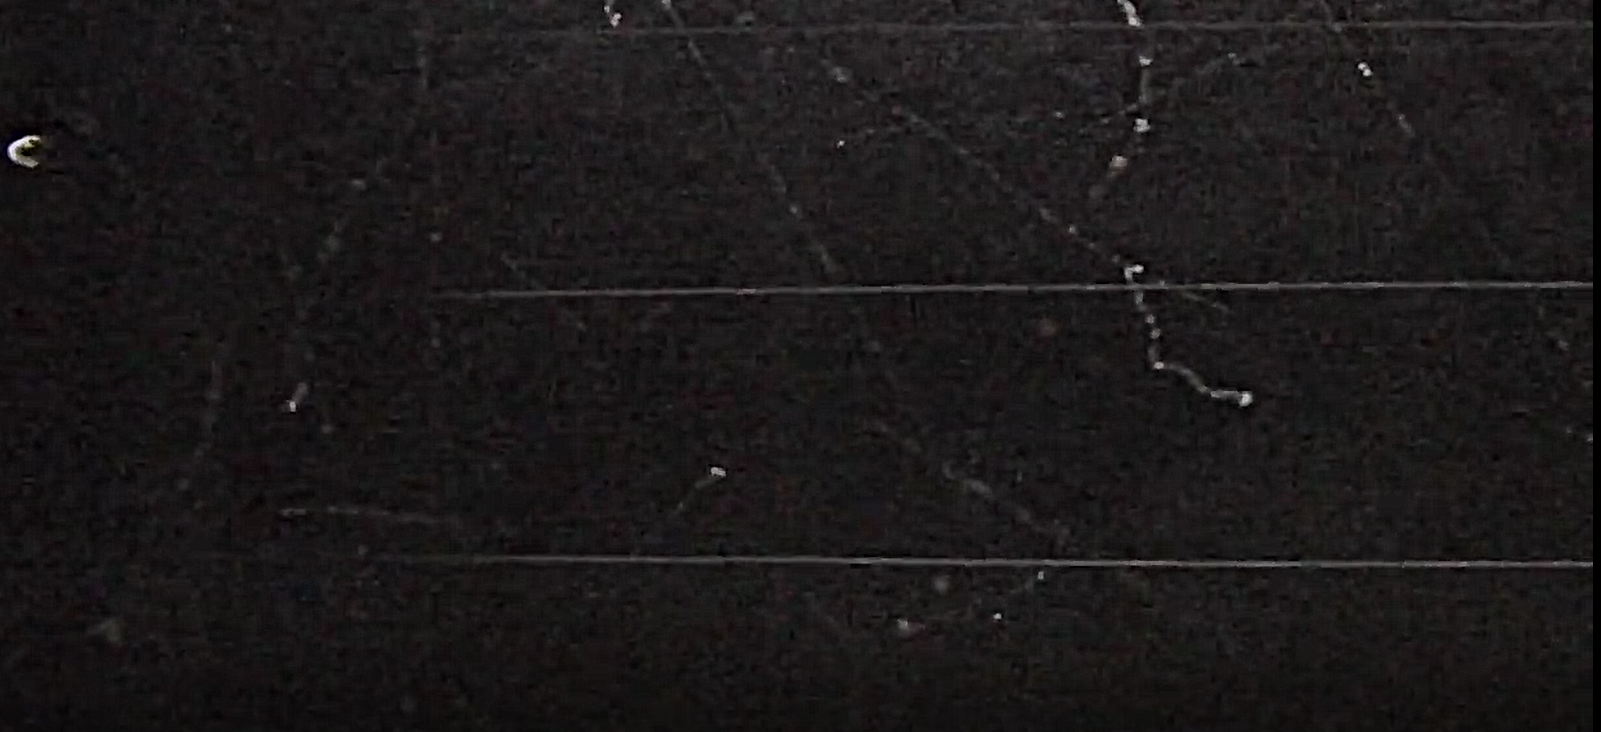 Particles seen in Cloud Chamber